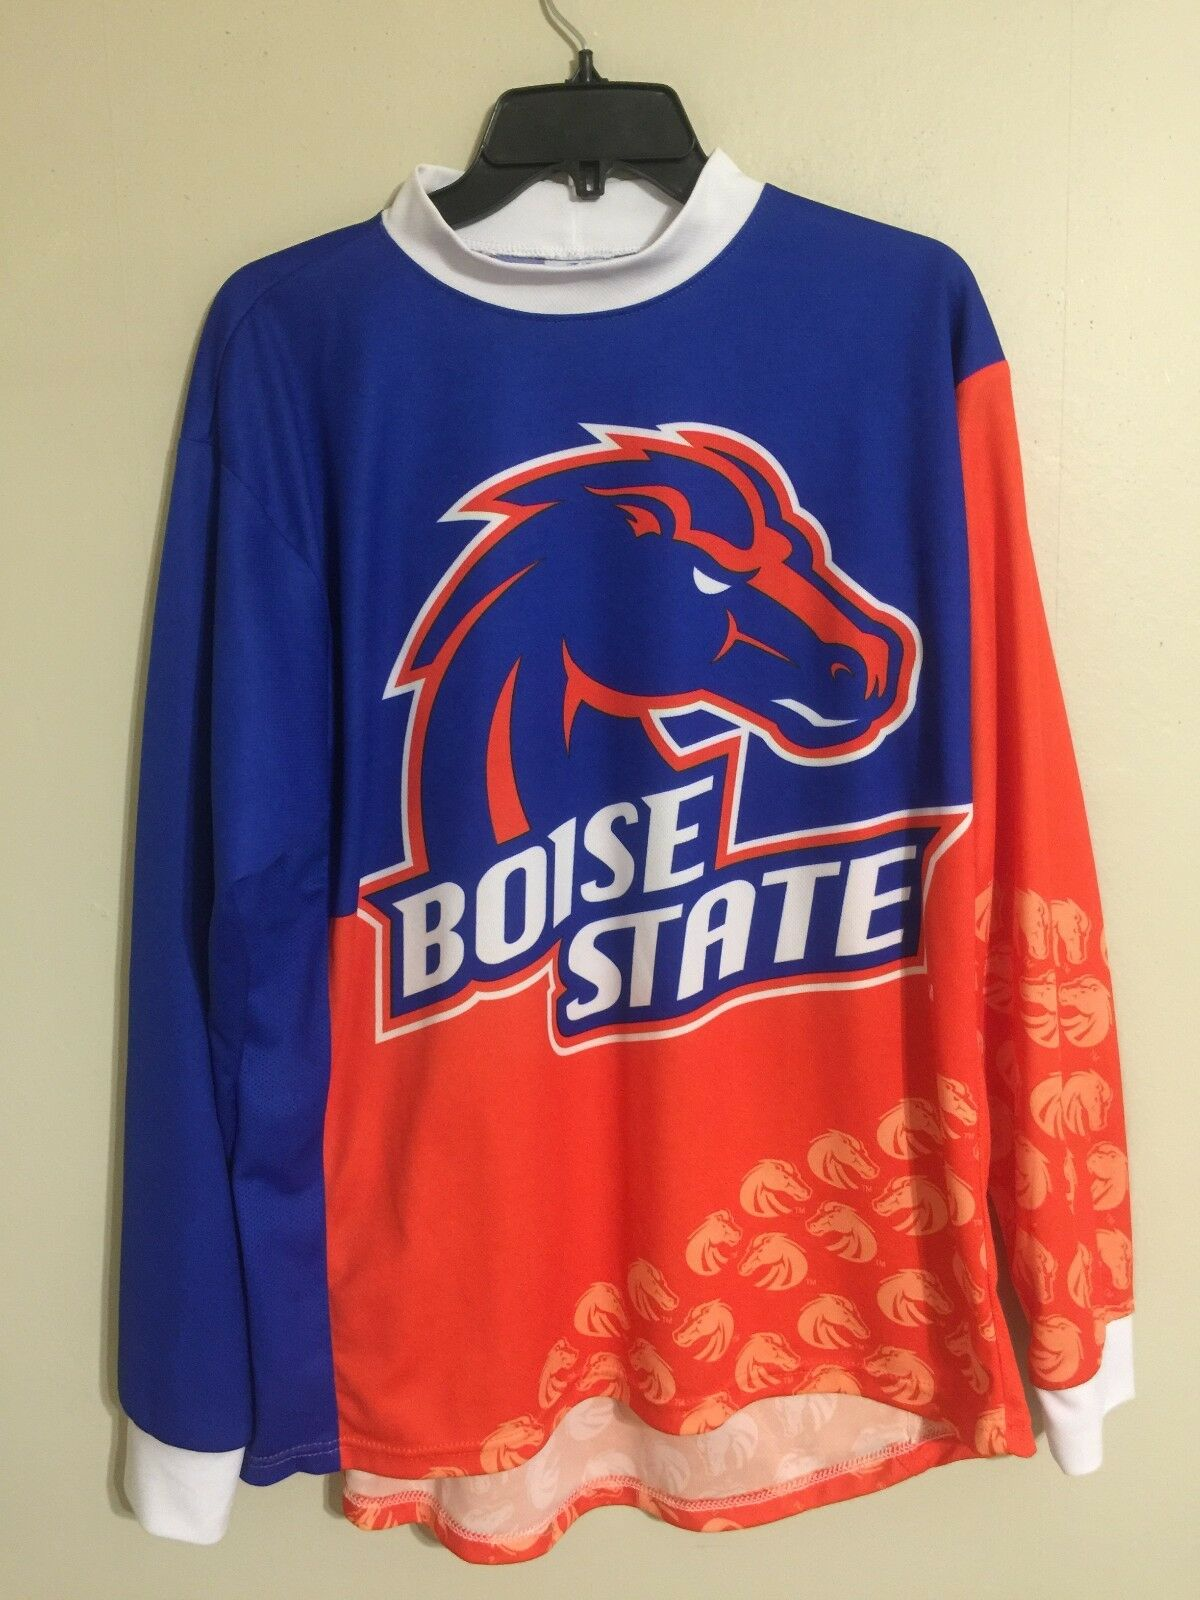 Boise State Broncos Adrenaline Promotions L S Mountain Biking Jersey  - Men's L  the best selection of